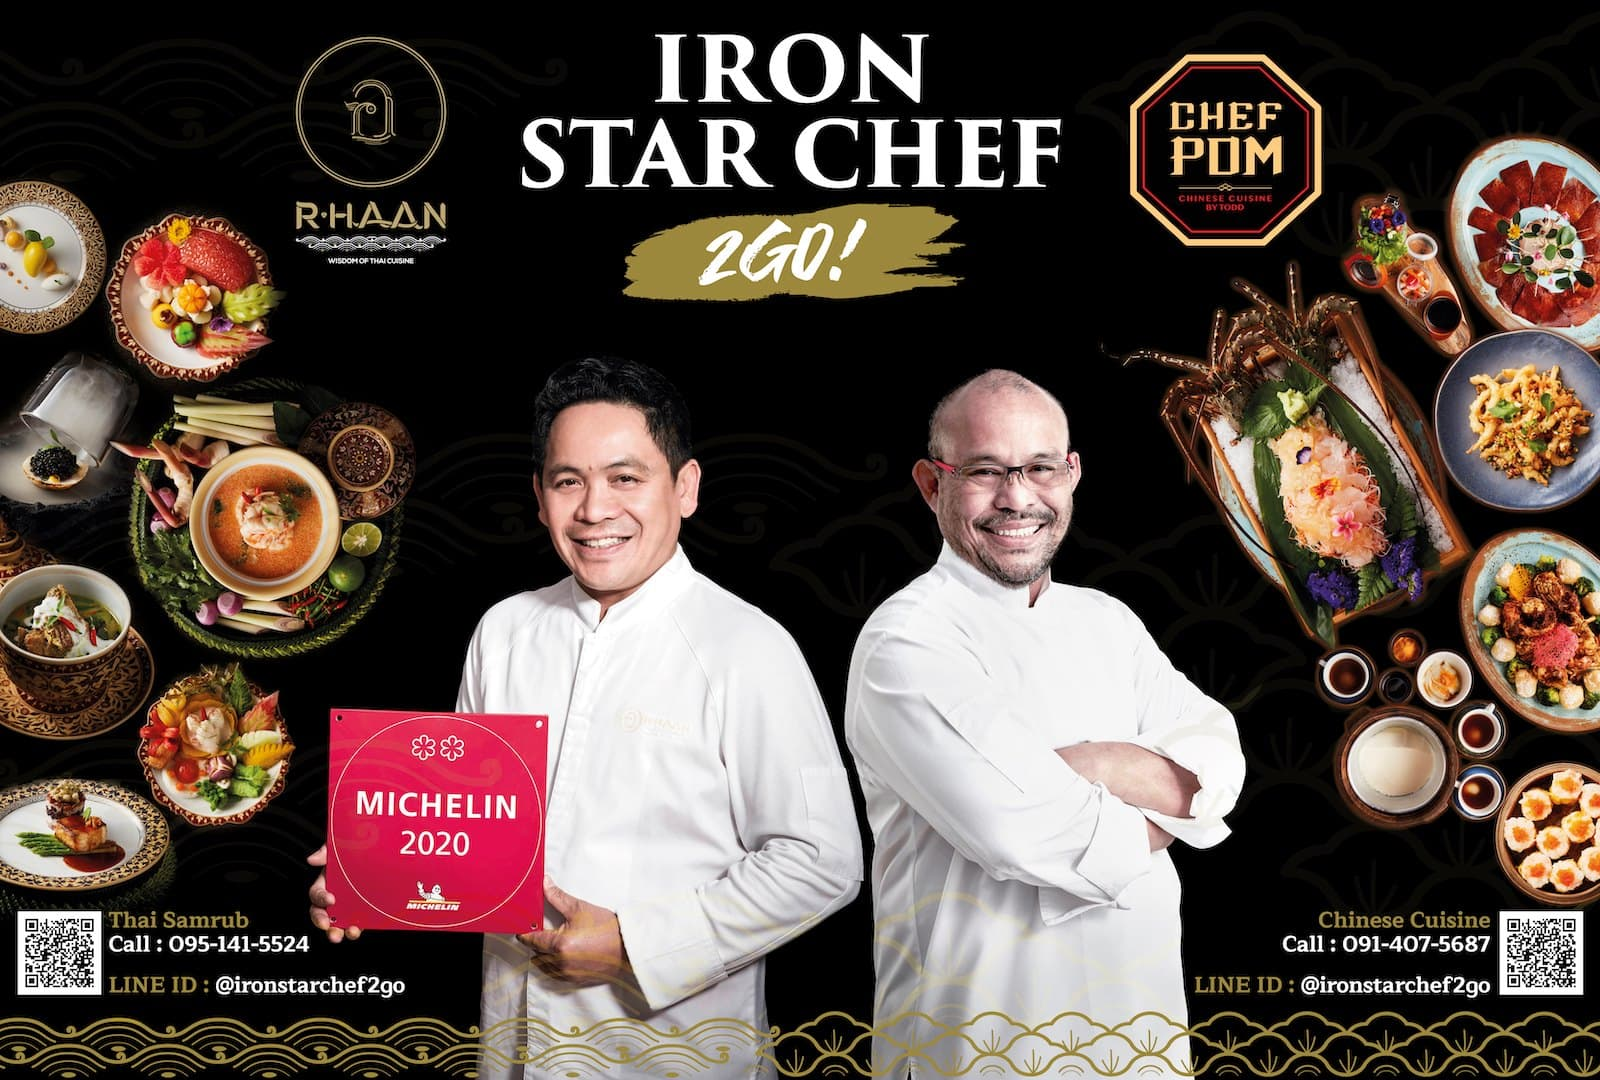 Experience Iron Star Chef 2 Go in Your Home